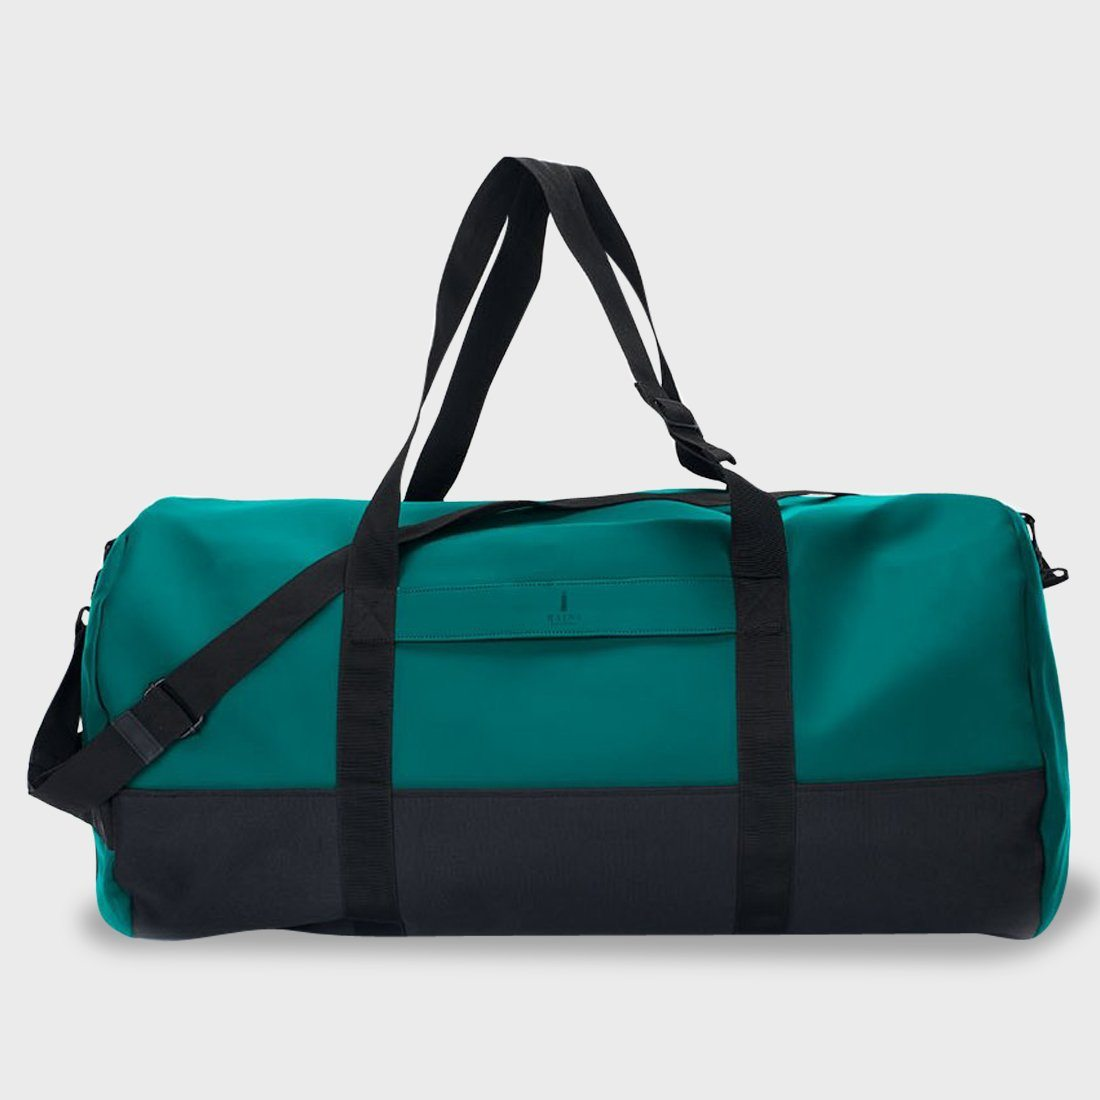 RAINS Travel Duffel Teal